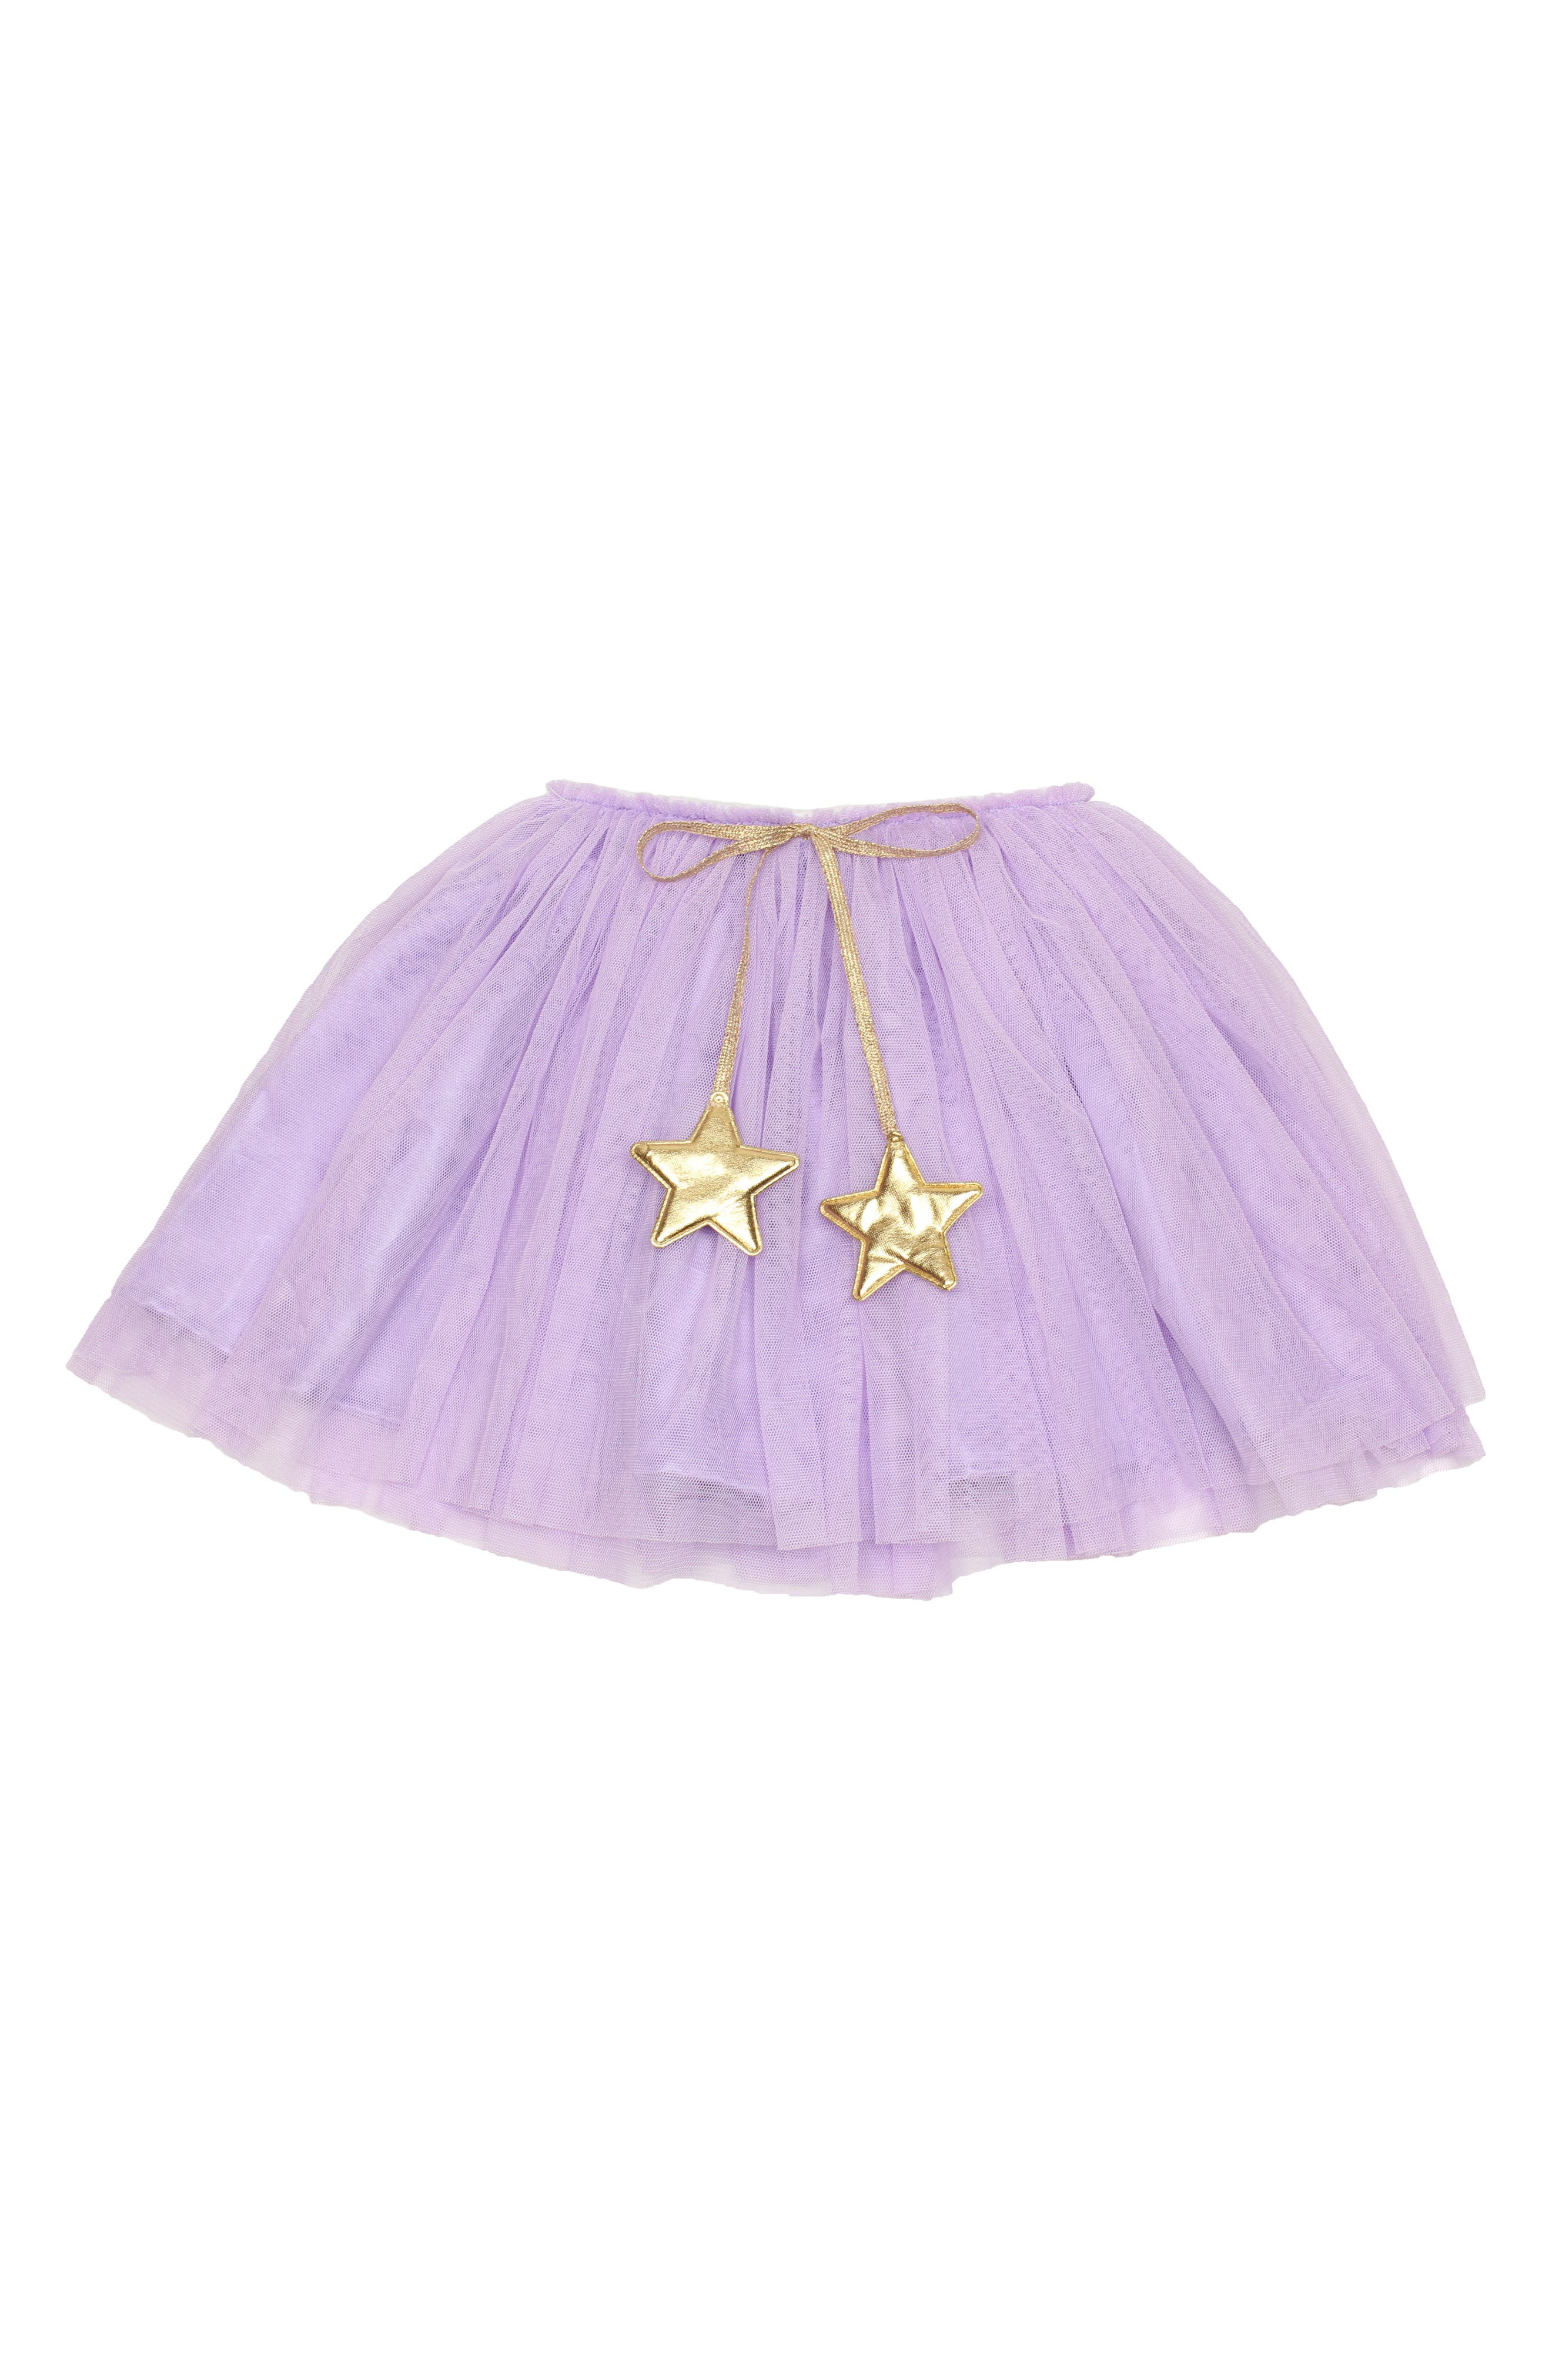 POPATU Gold Star Tutu Skirt